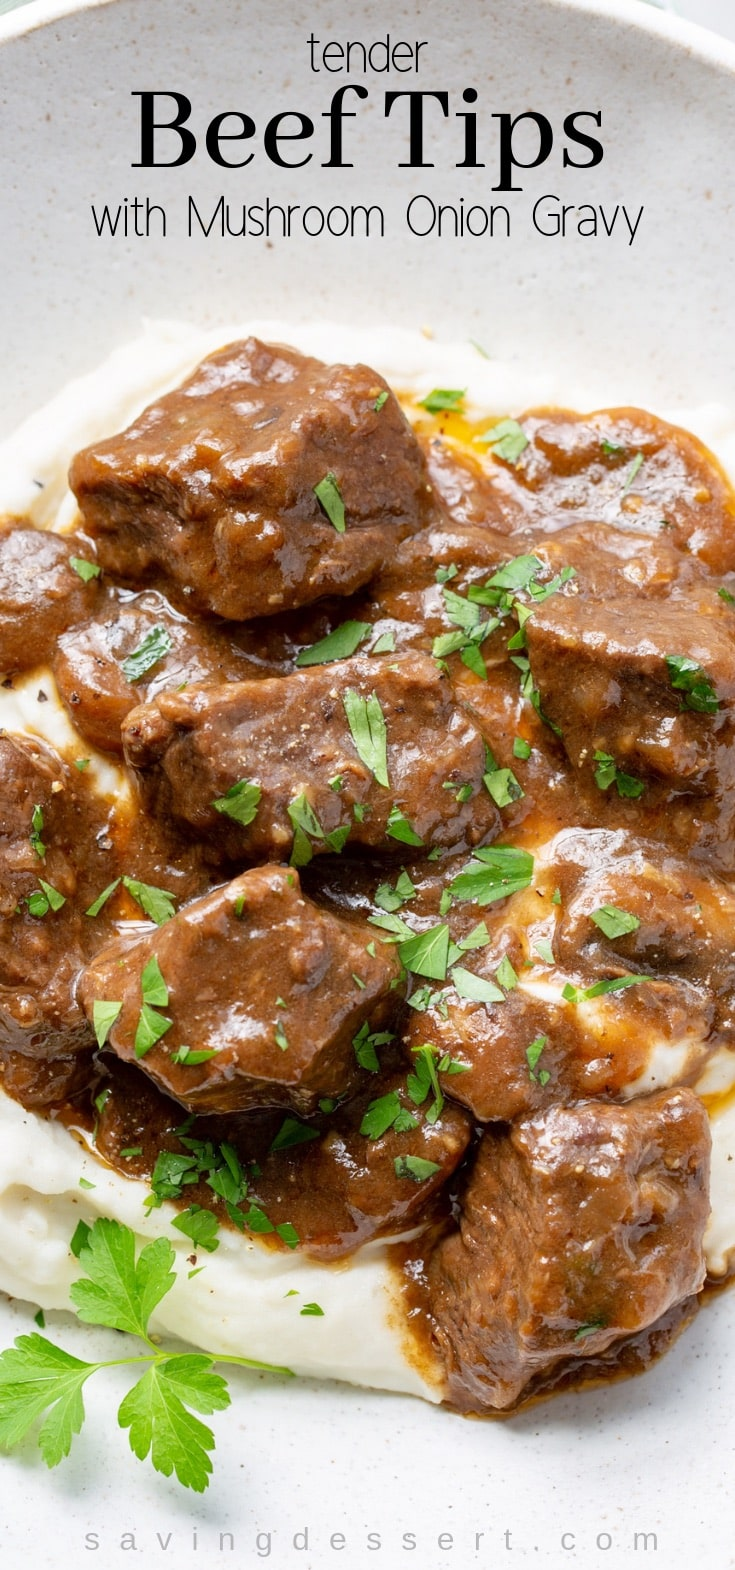 Beef Tips and Gravy with mushrooms and onions is a deliciously tender dish perfect served over fluffy mashed potatoes, buttery noodles or hot cooked rice. #beeftips #beeftipsandgravy #beeftipsandnoodles #beef #stewmeat #chuckroast #mushroomoniongravy #dinner #comfortfood #companyrecipe